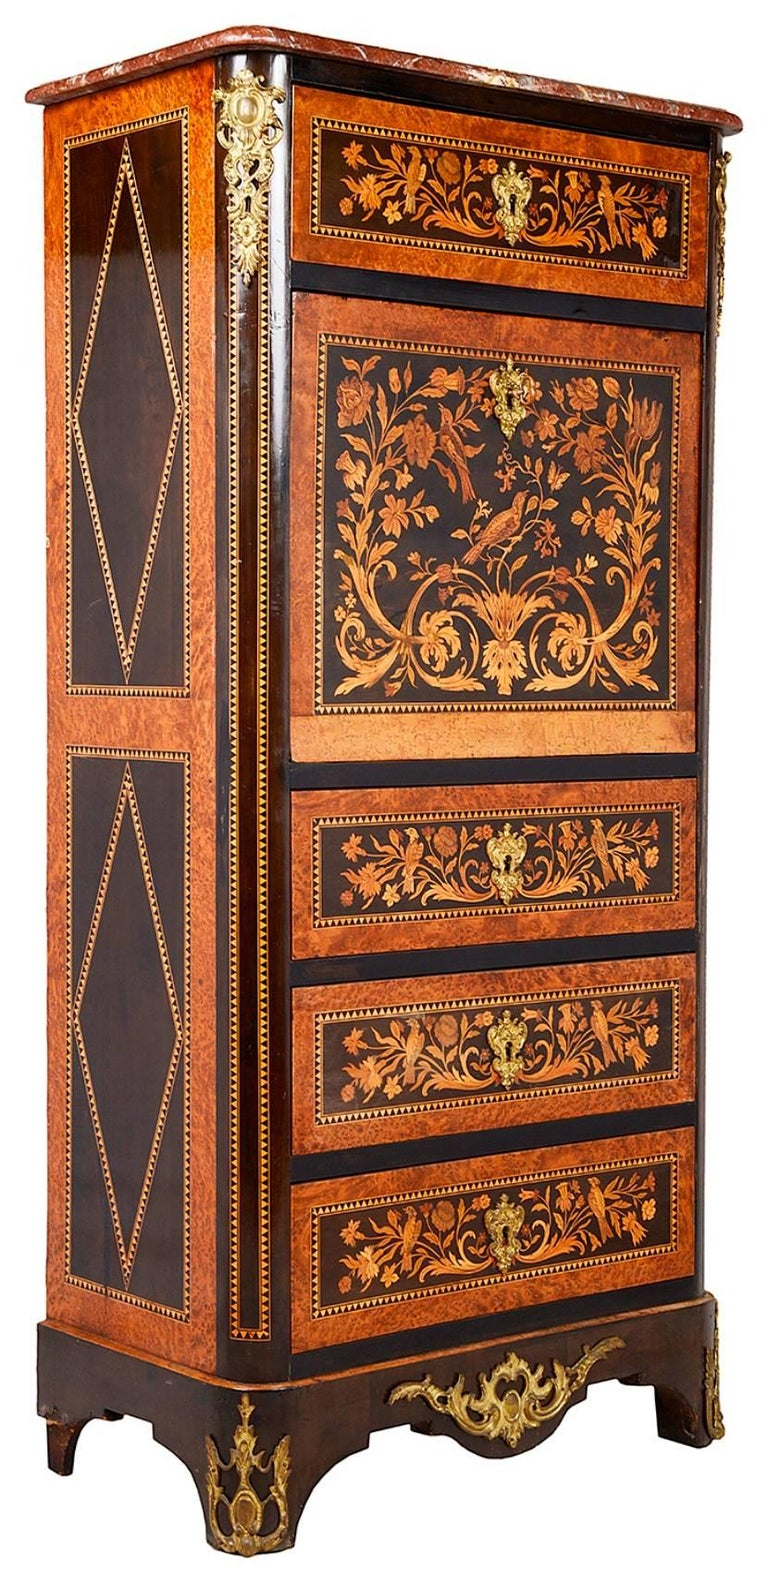 A good quality Louis XVI style marquetry inlaid Secretaire Abattant. Having a Rouge marble top, profuse scrolling floral inlay to the front. A single drawer to the top, the fall front opening to reveal fitted inlaid drawers and an inset writing